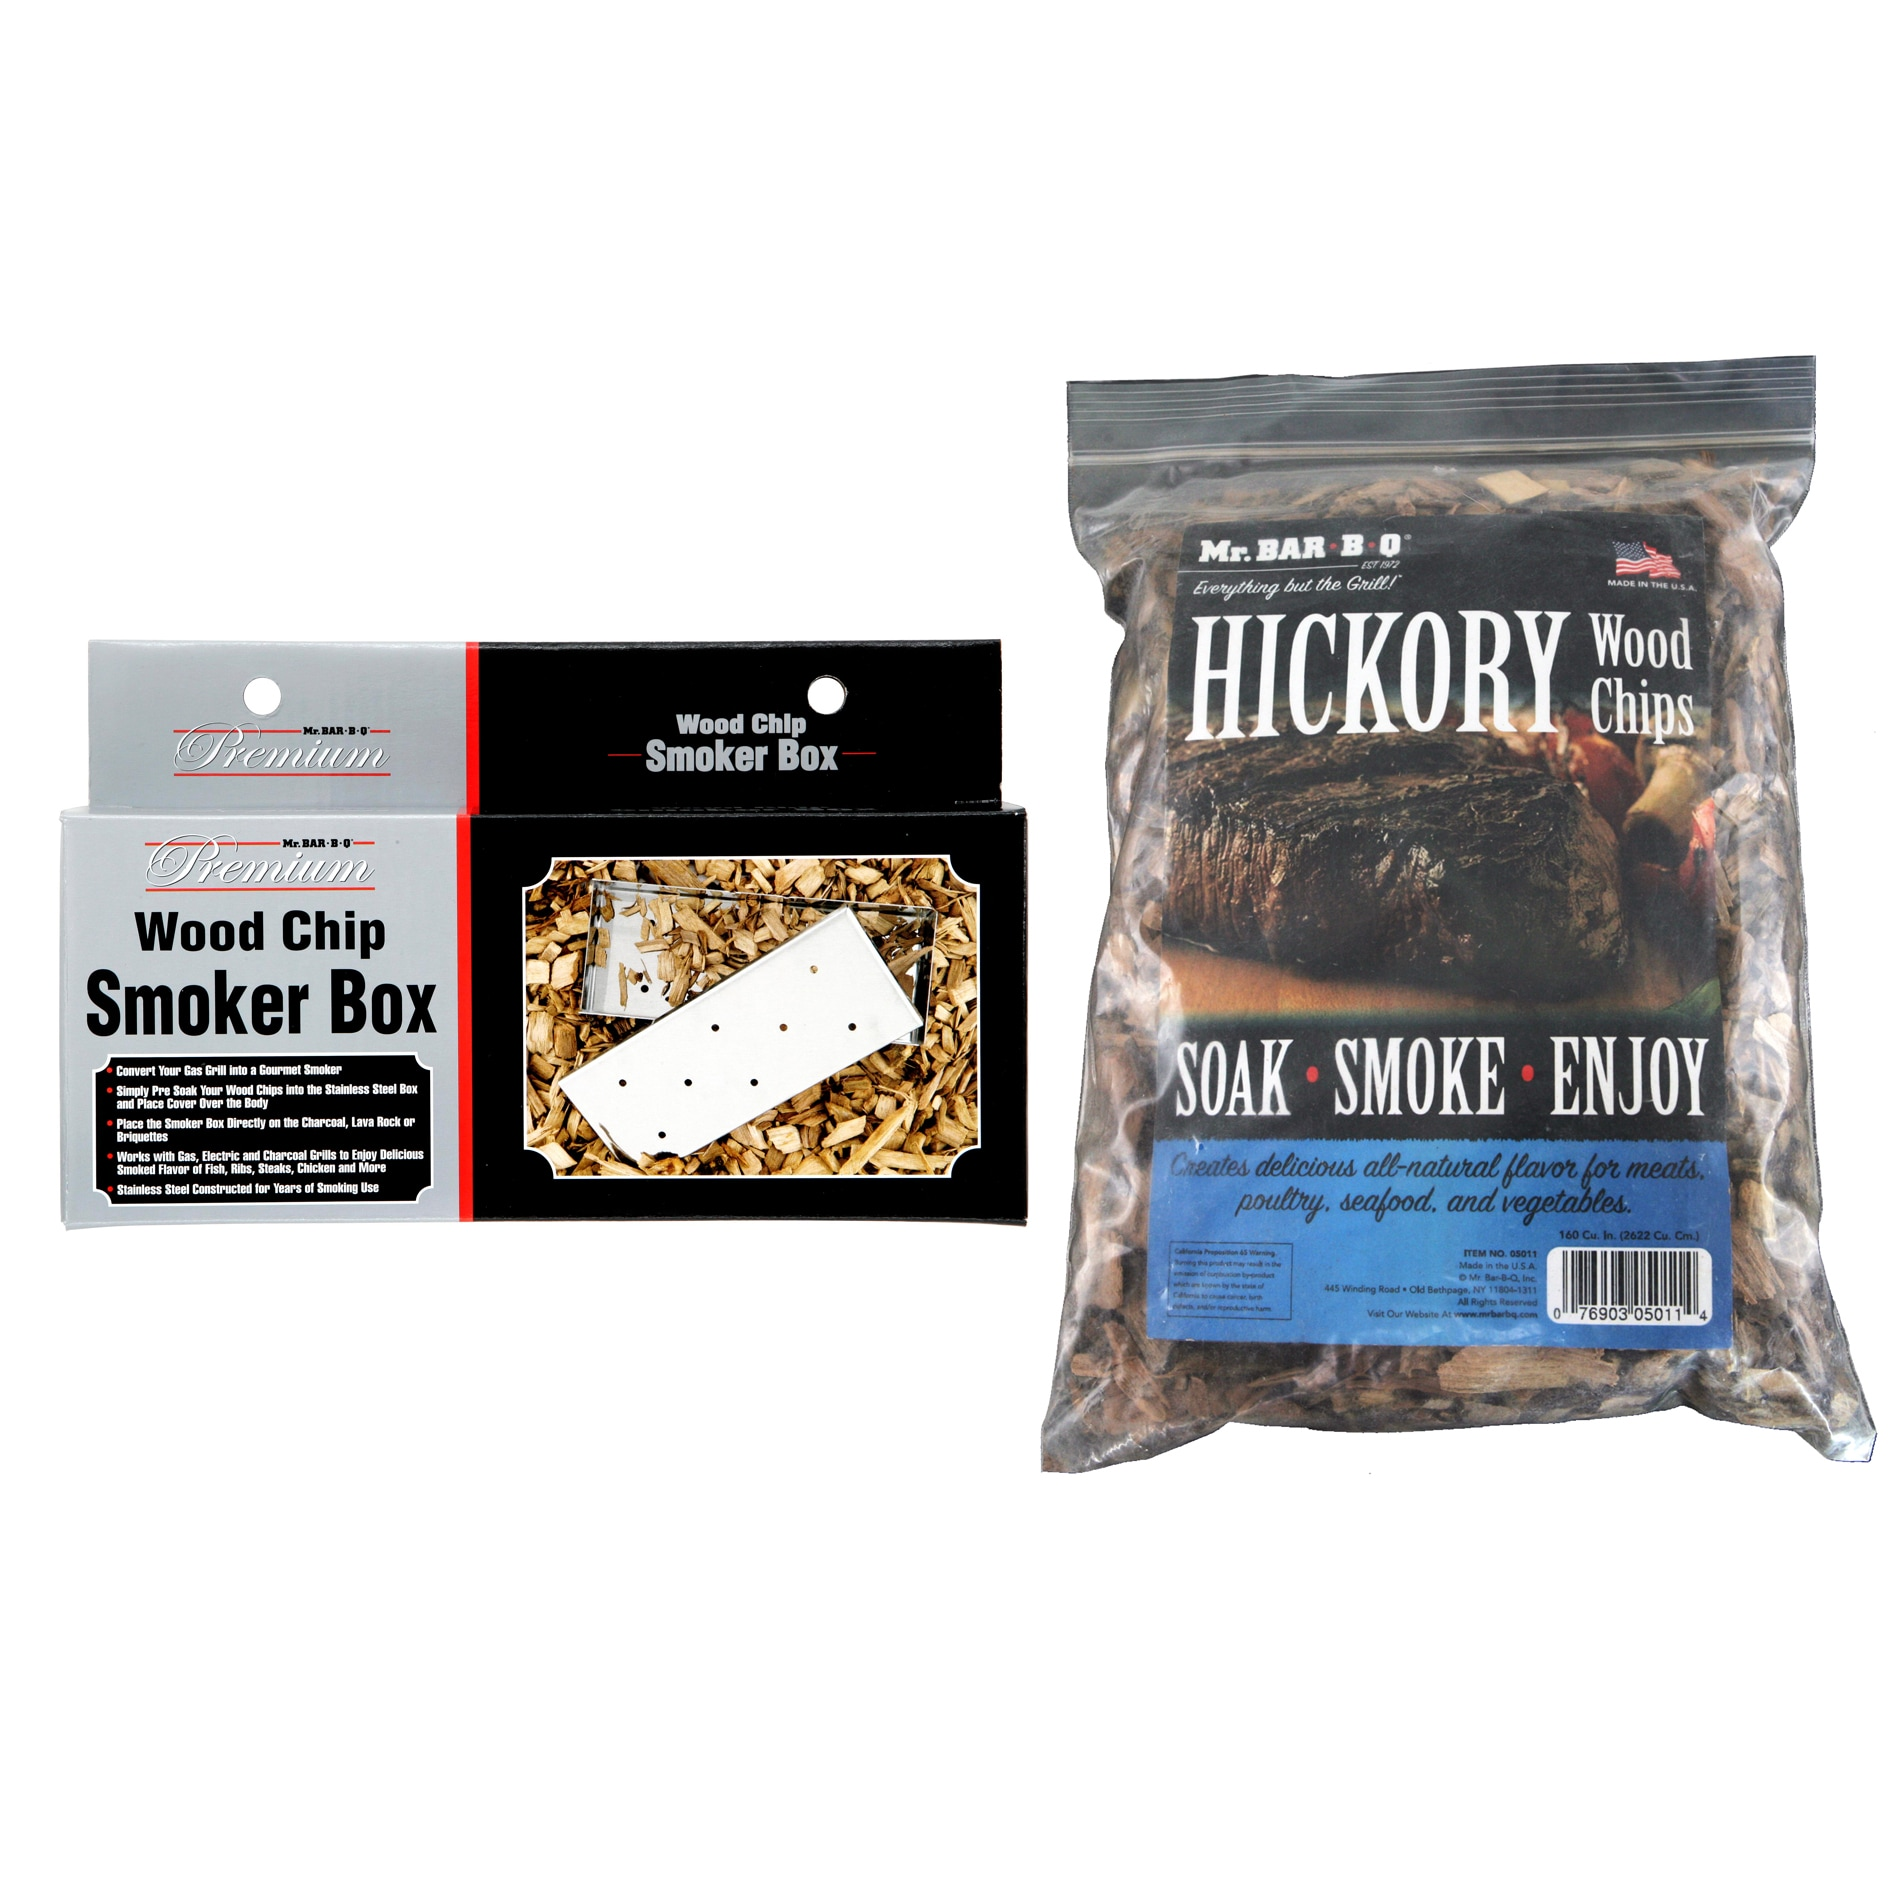 Mr. BBQ Stainless Steel Smoker Box with Hickory Wood Chips